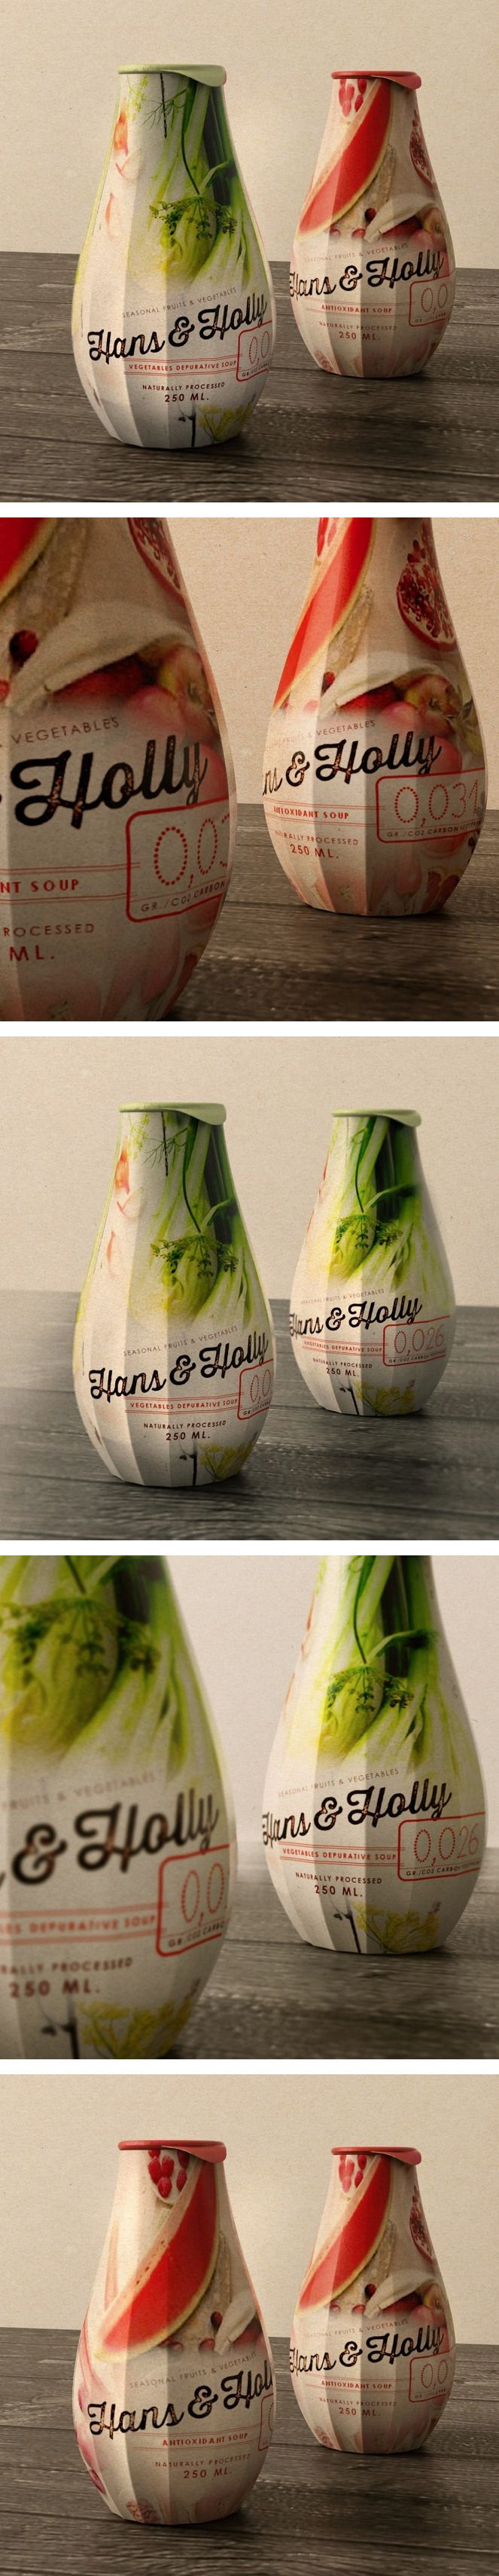 HANS & HOLLY Soups packaging PD